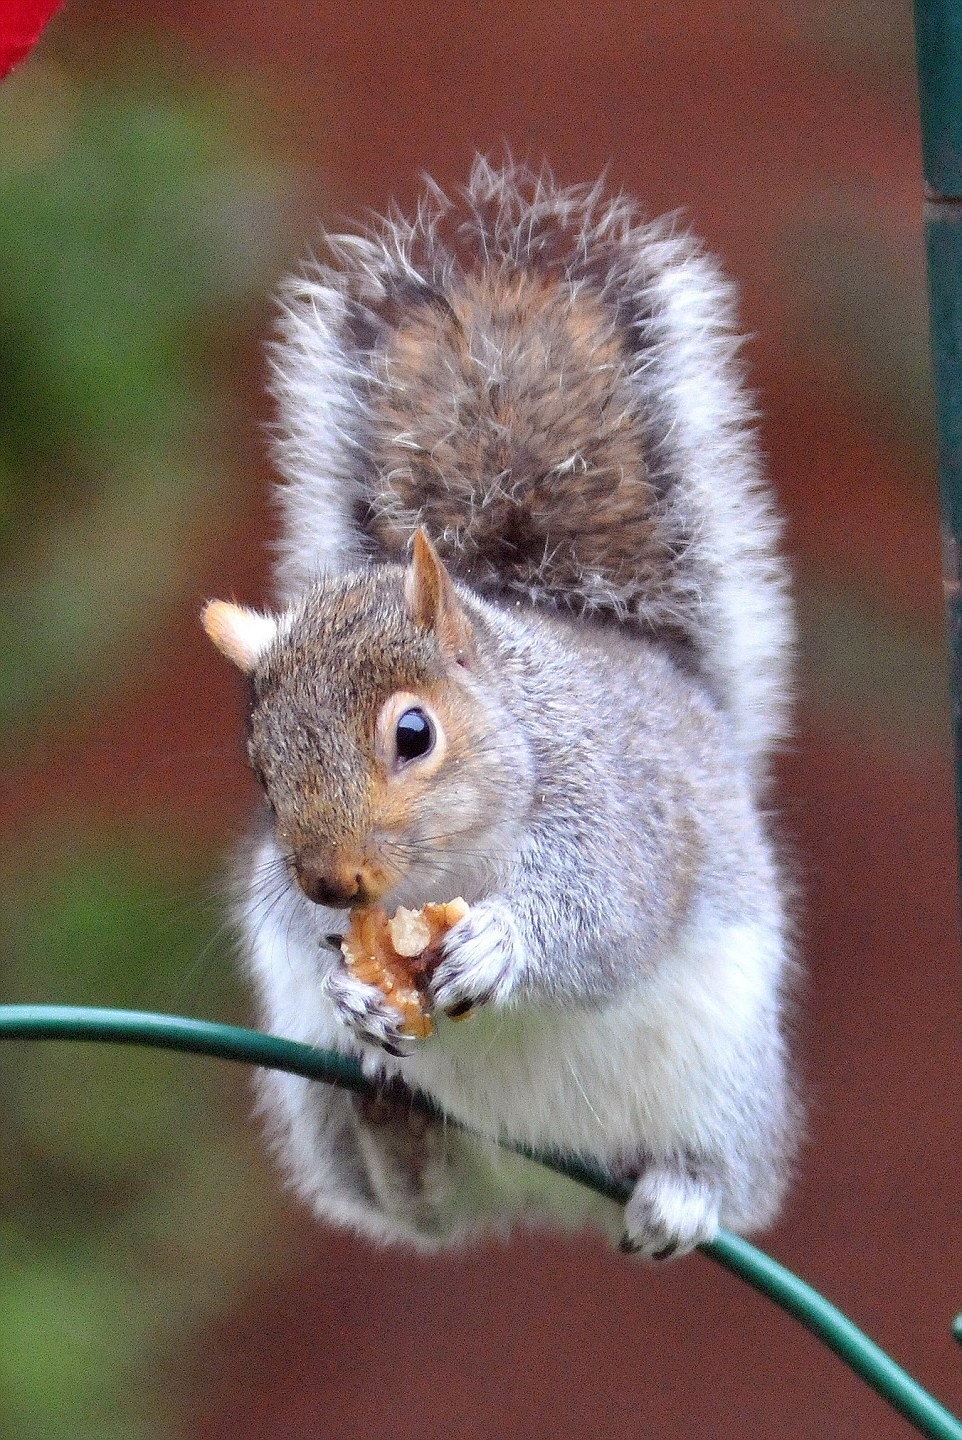 Squirrel Goes Nuts For Christmas Stocking Full Of Treats